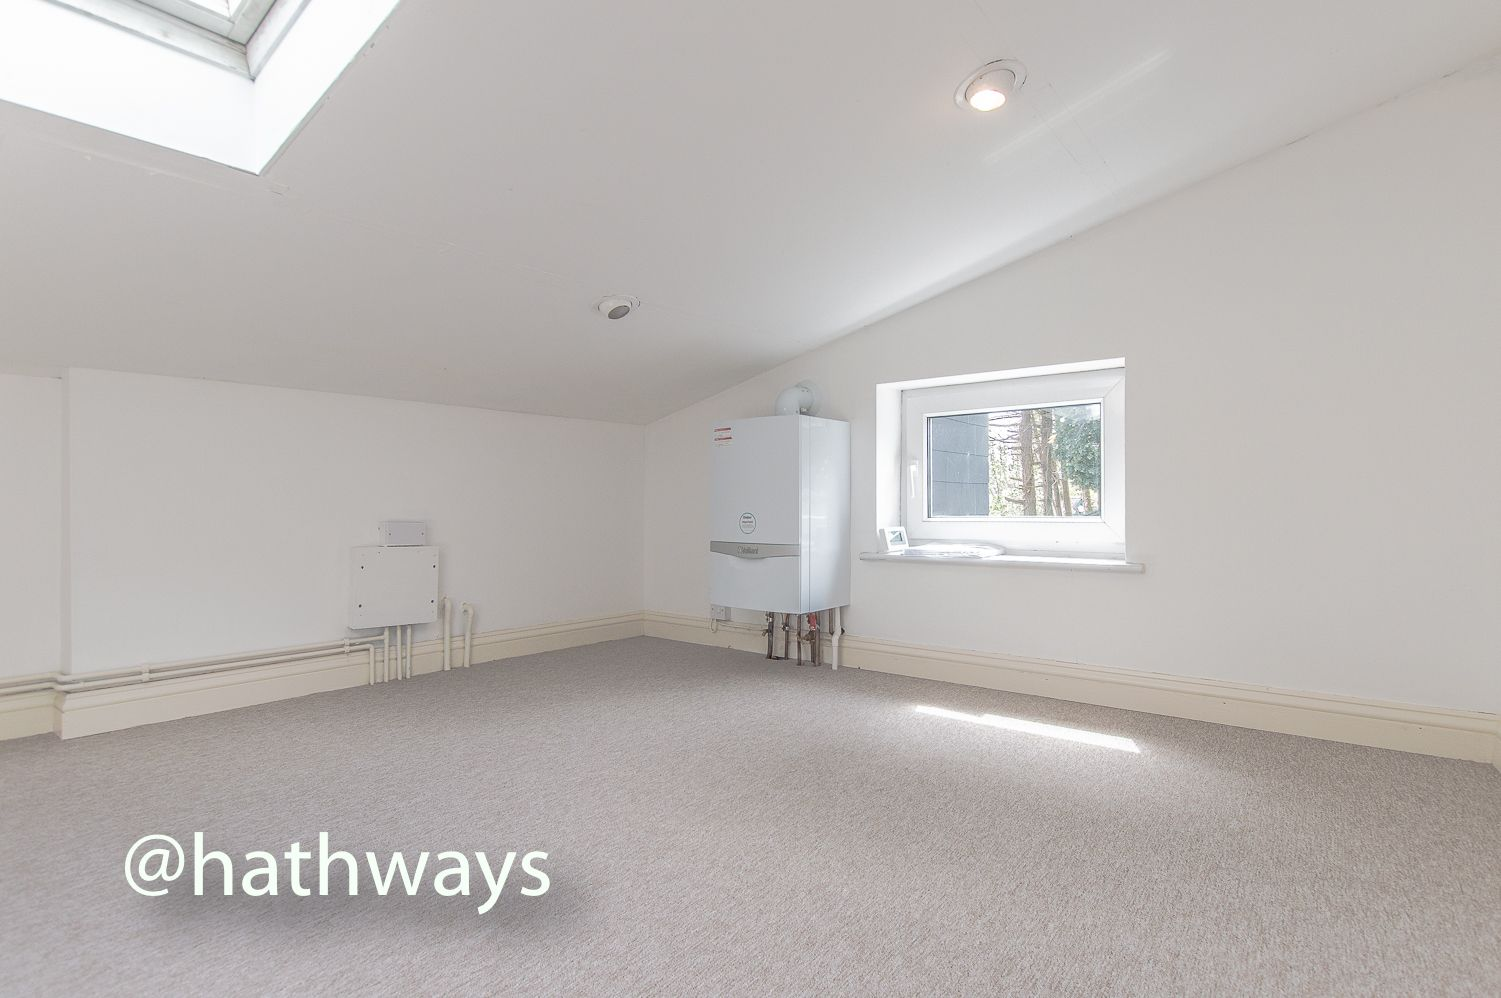 4 bed house for sale in Lower Stoney Road  - Property Image 39